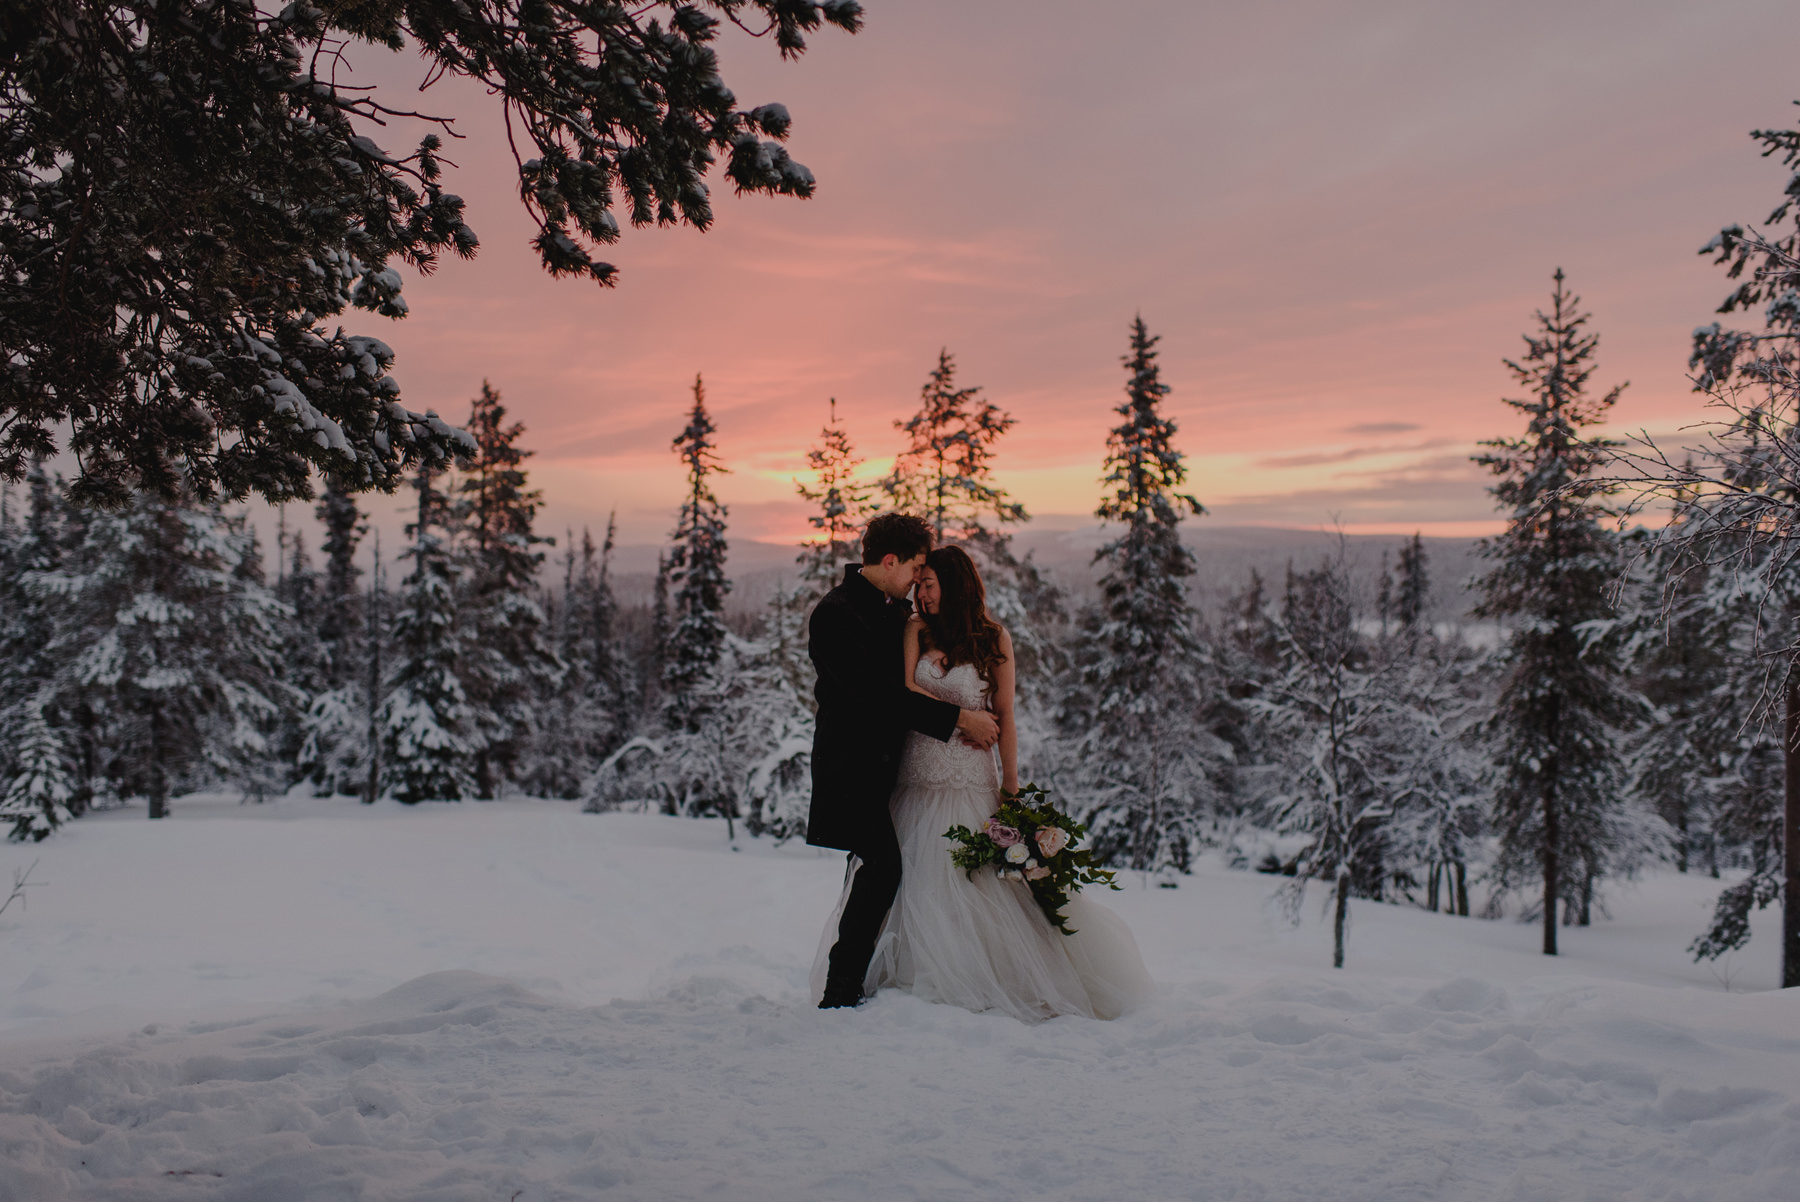 LAPLAND WEDDING PHOTOGRAPHER awesome winter wedding sunset